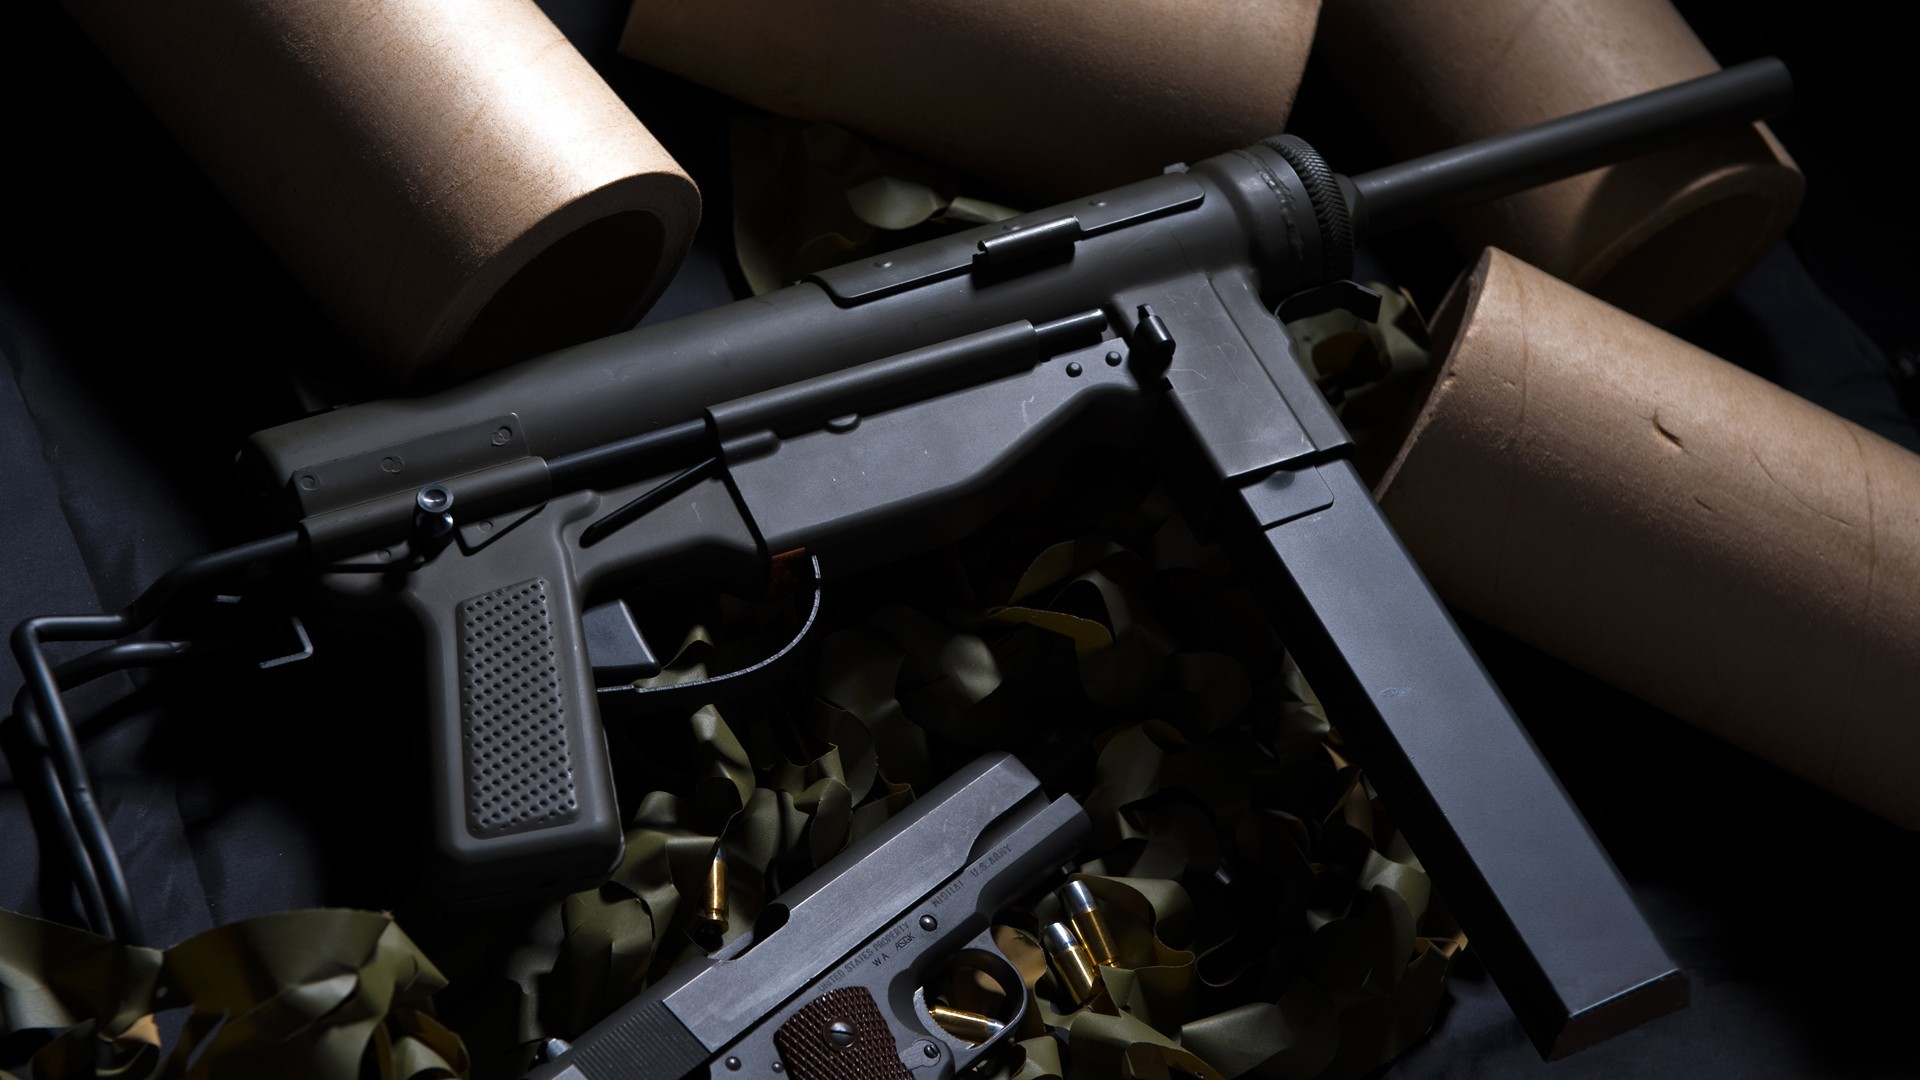 1920x1080 ... Wallpapers Awesome, Machine, Gun, Backgrounpicture, New, Best,  Hwallpapers .